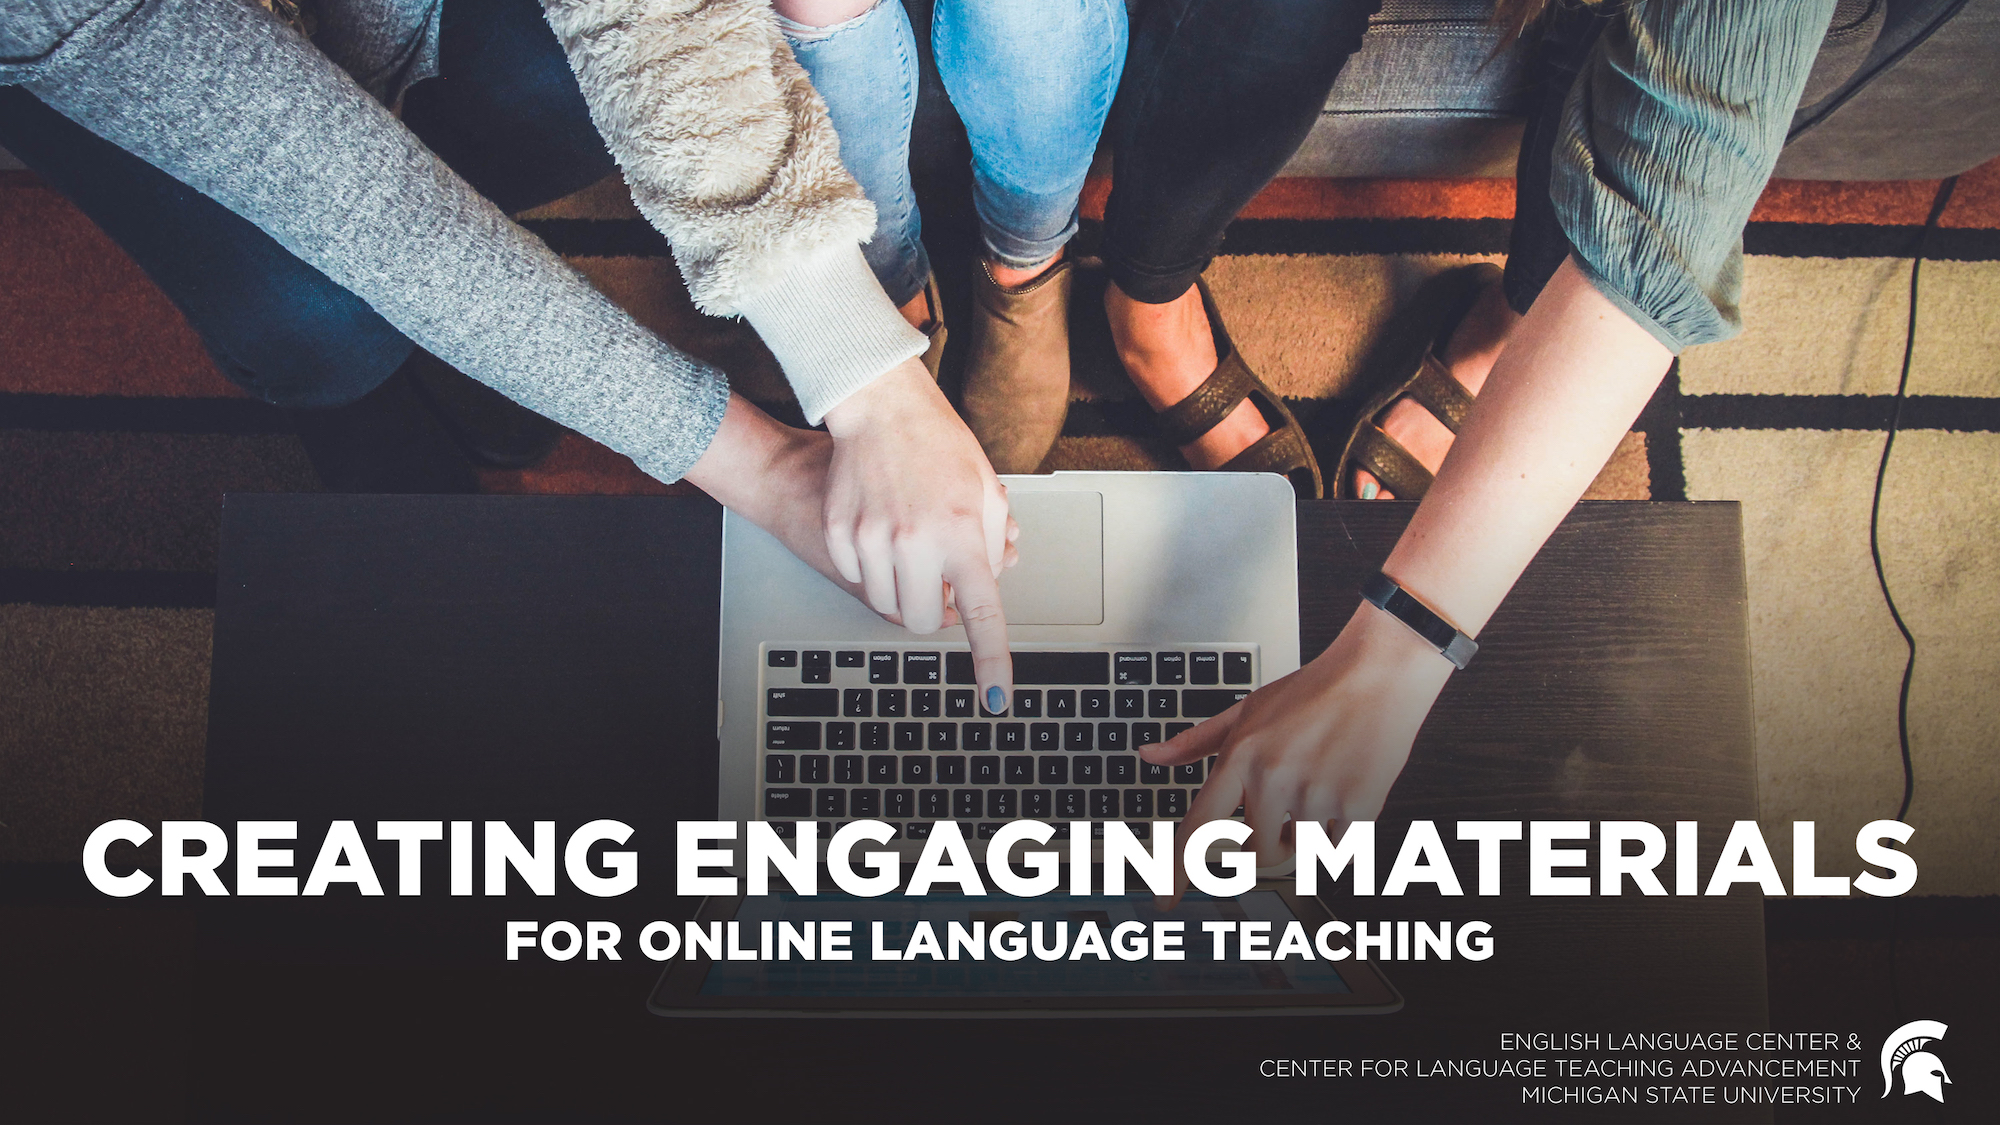 Creating Engaging Materials for Online Language Teaching